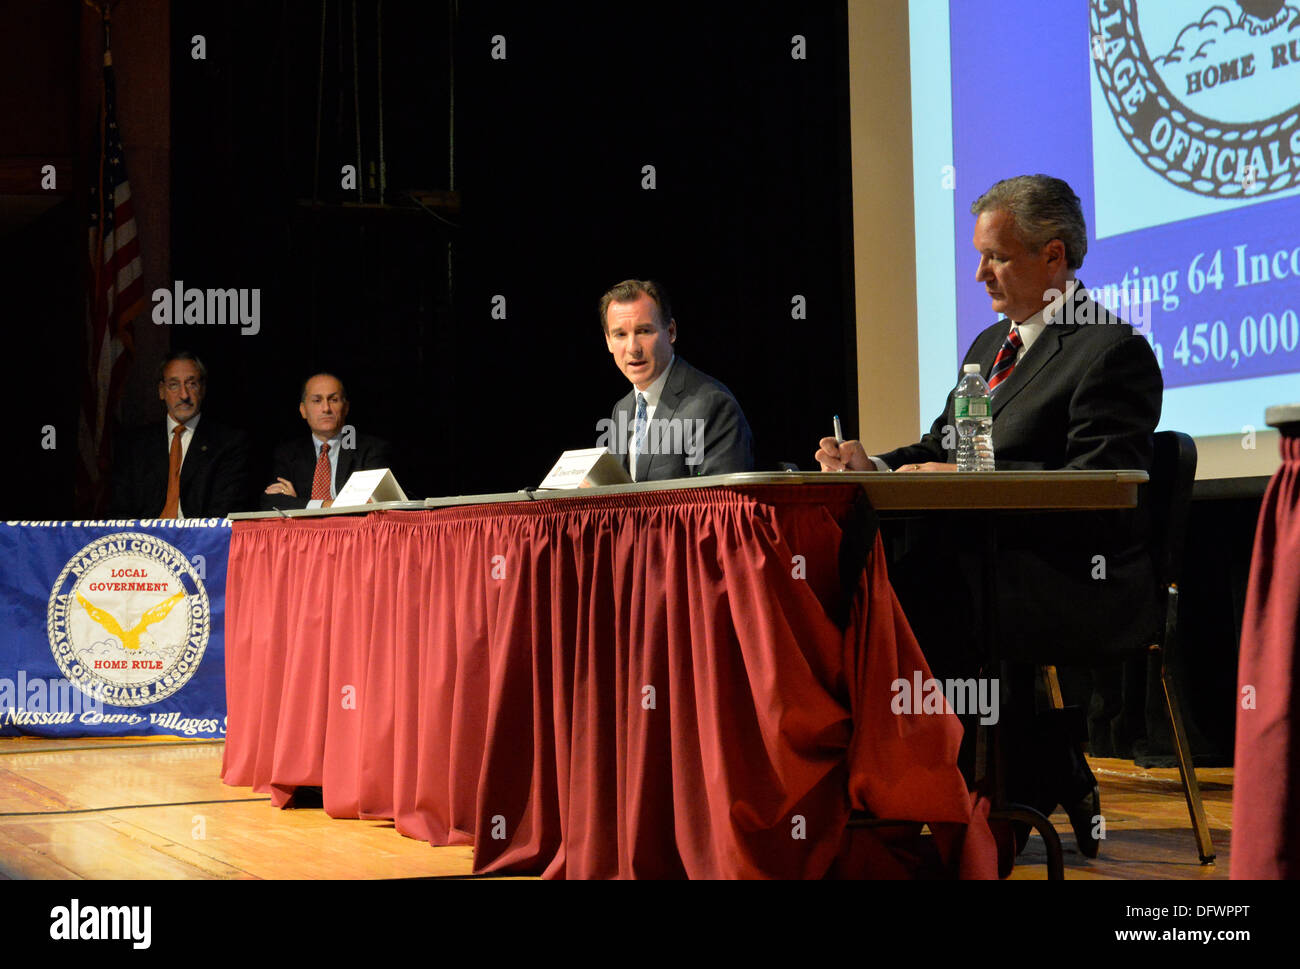 Old Westbury, New York, U.S. 8th October 2013. Republican EDWARD MANGANO, the Nassau County Executive, and Democrat THOMAS SUOZZI, the former County Executive, R-L at red table, face each other in a debate hosted by the Nassau County Village Officials Association, representing 64 incorporated villages with 450,000 residents, as the opponents face a rematch in the 2013 November elections. Credit:  Ann E Parry/Alamy Live News - Stock Image